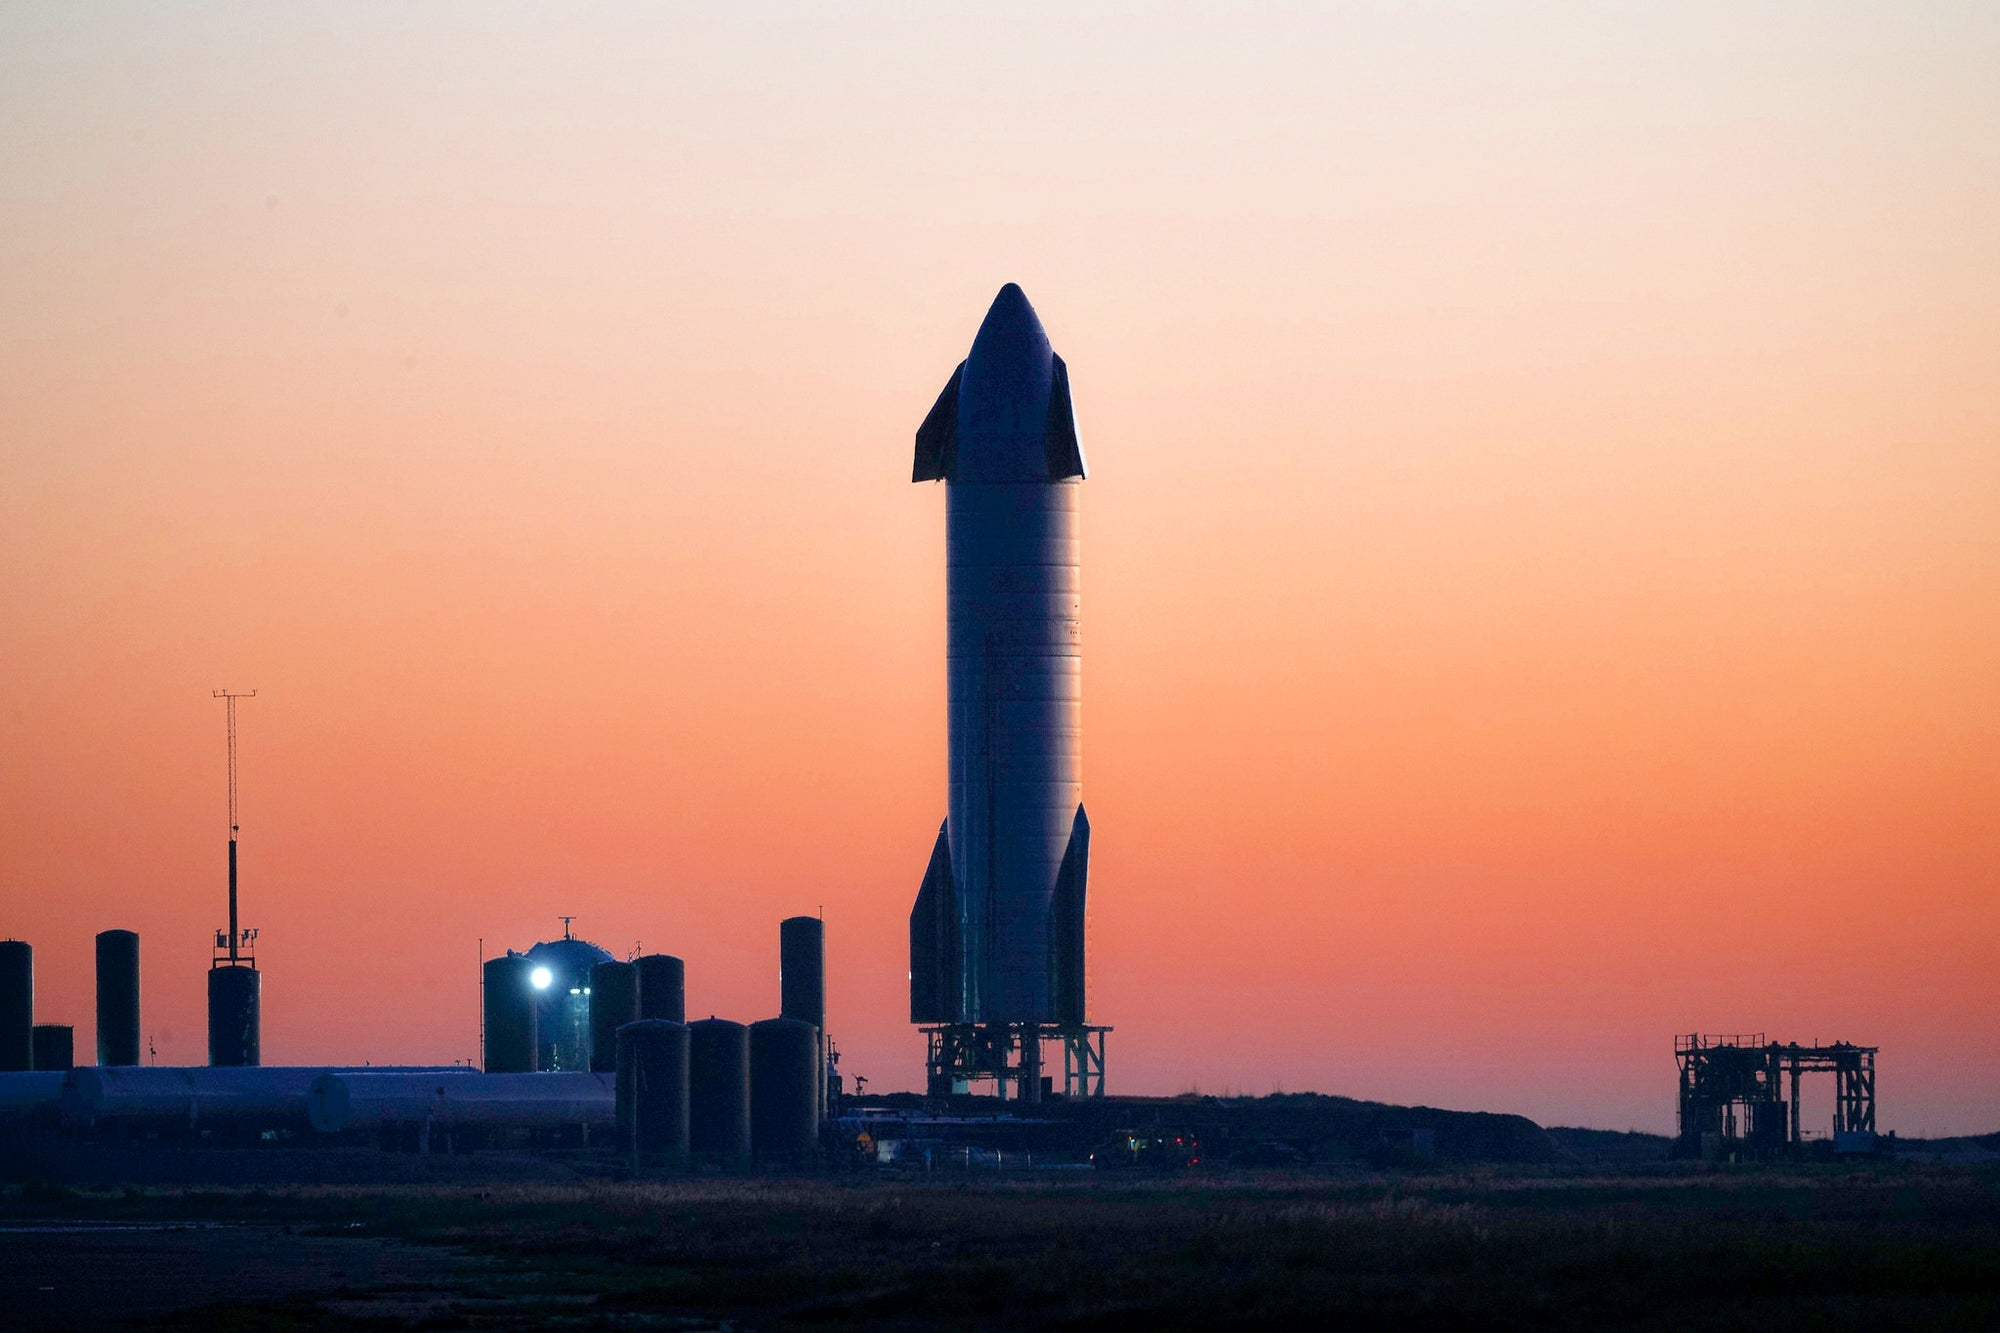 Excitement builds over Starship SN9's upcoming flight as SpaceX awaits FAA approval